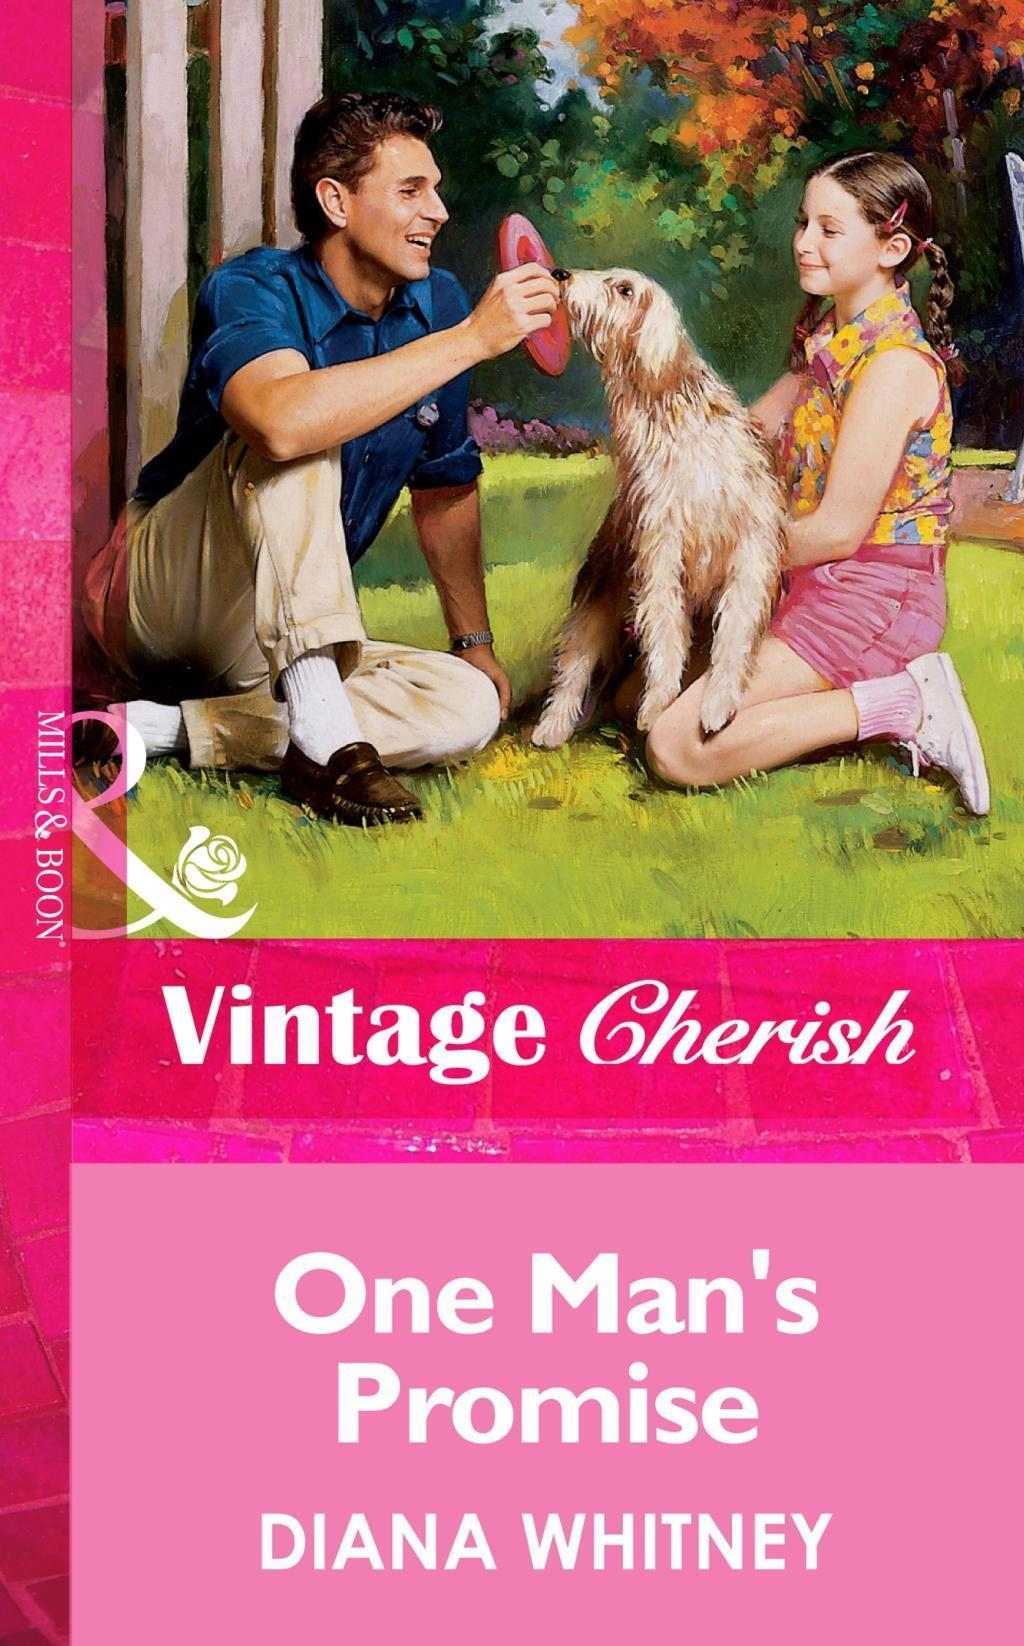 One Man's Promise (Mills & Boon Vintage Cherish)